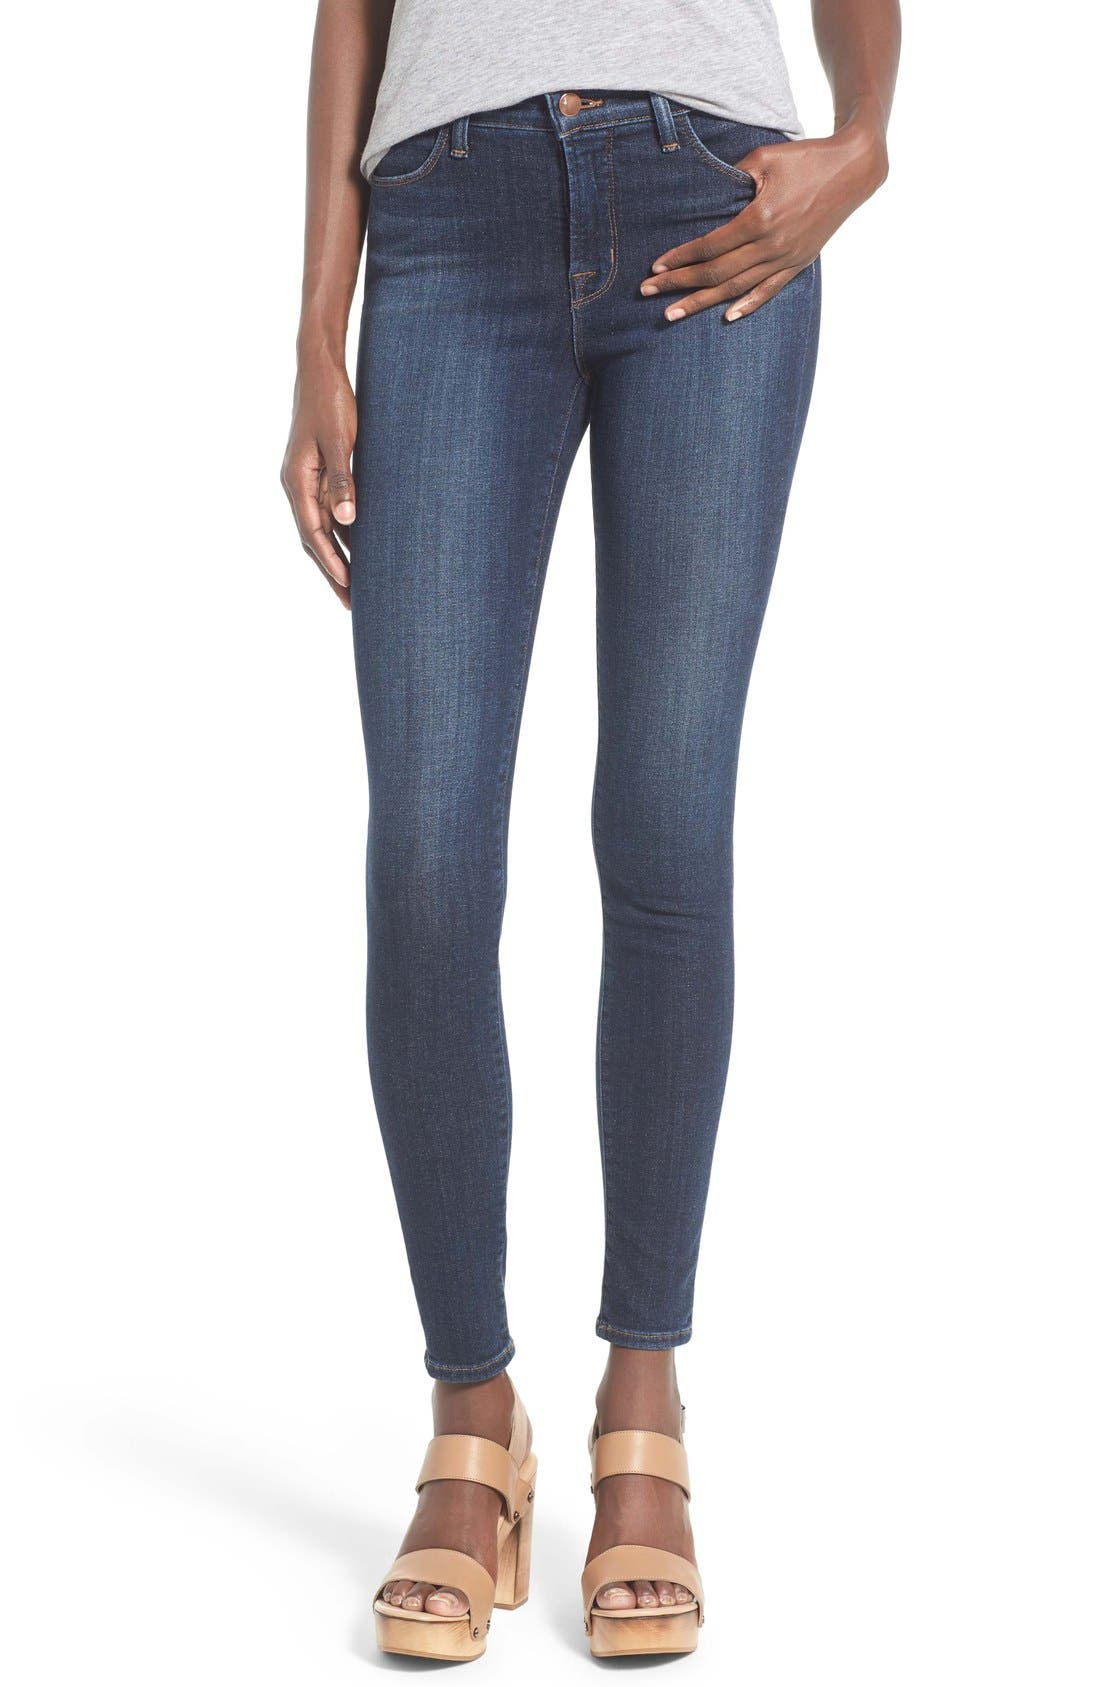 Alternate Image 1 Selected - J Brand 'Maria' Skinny Jeans (Oblivion)